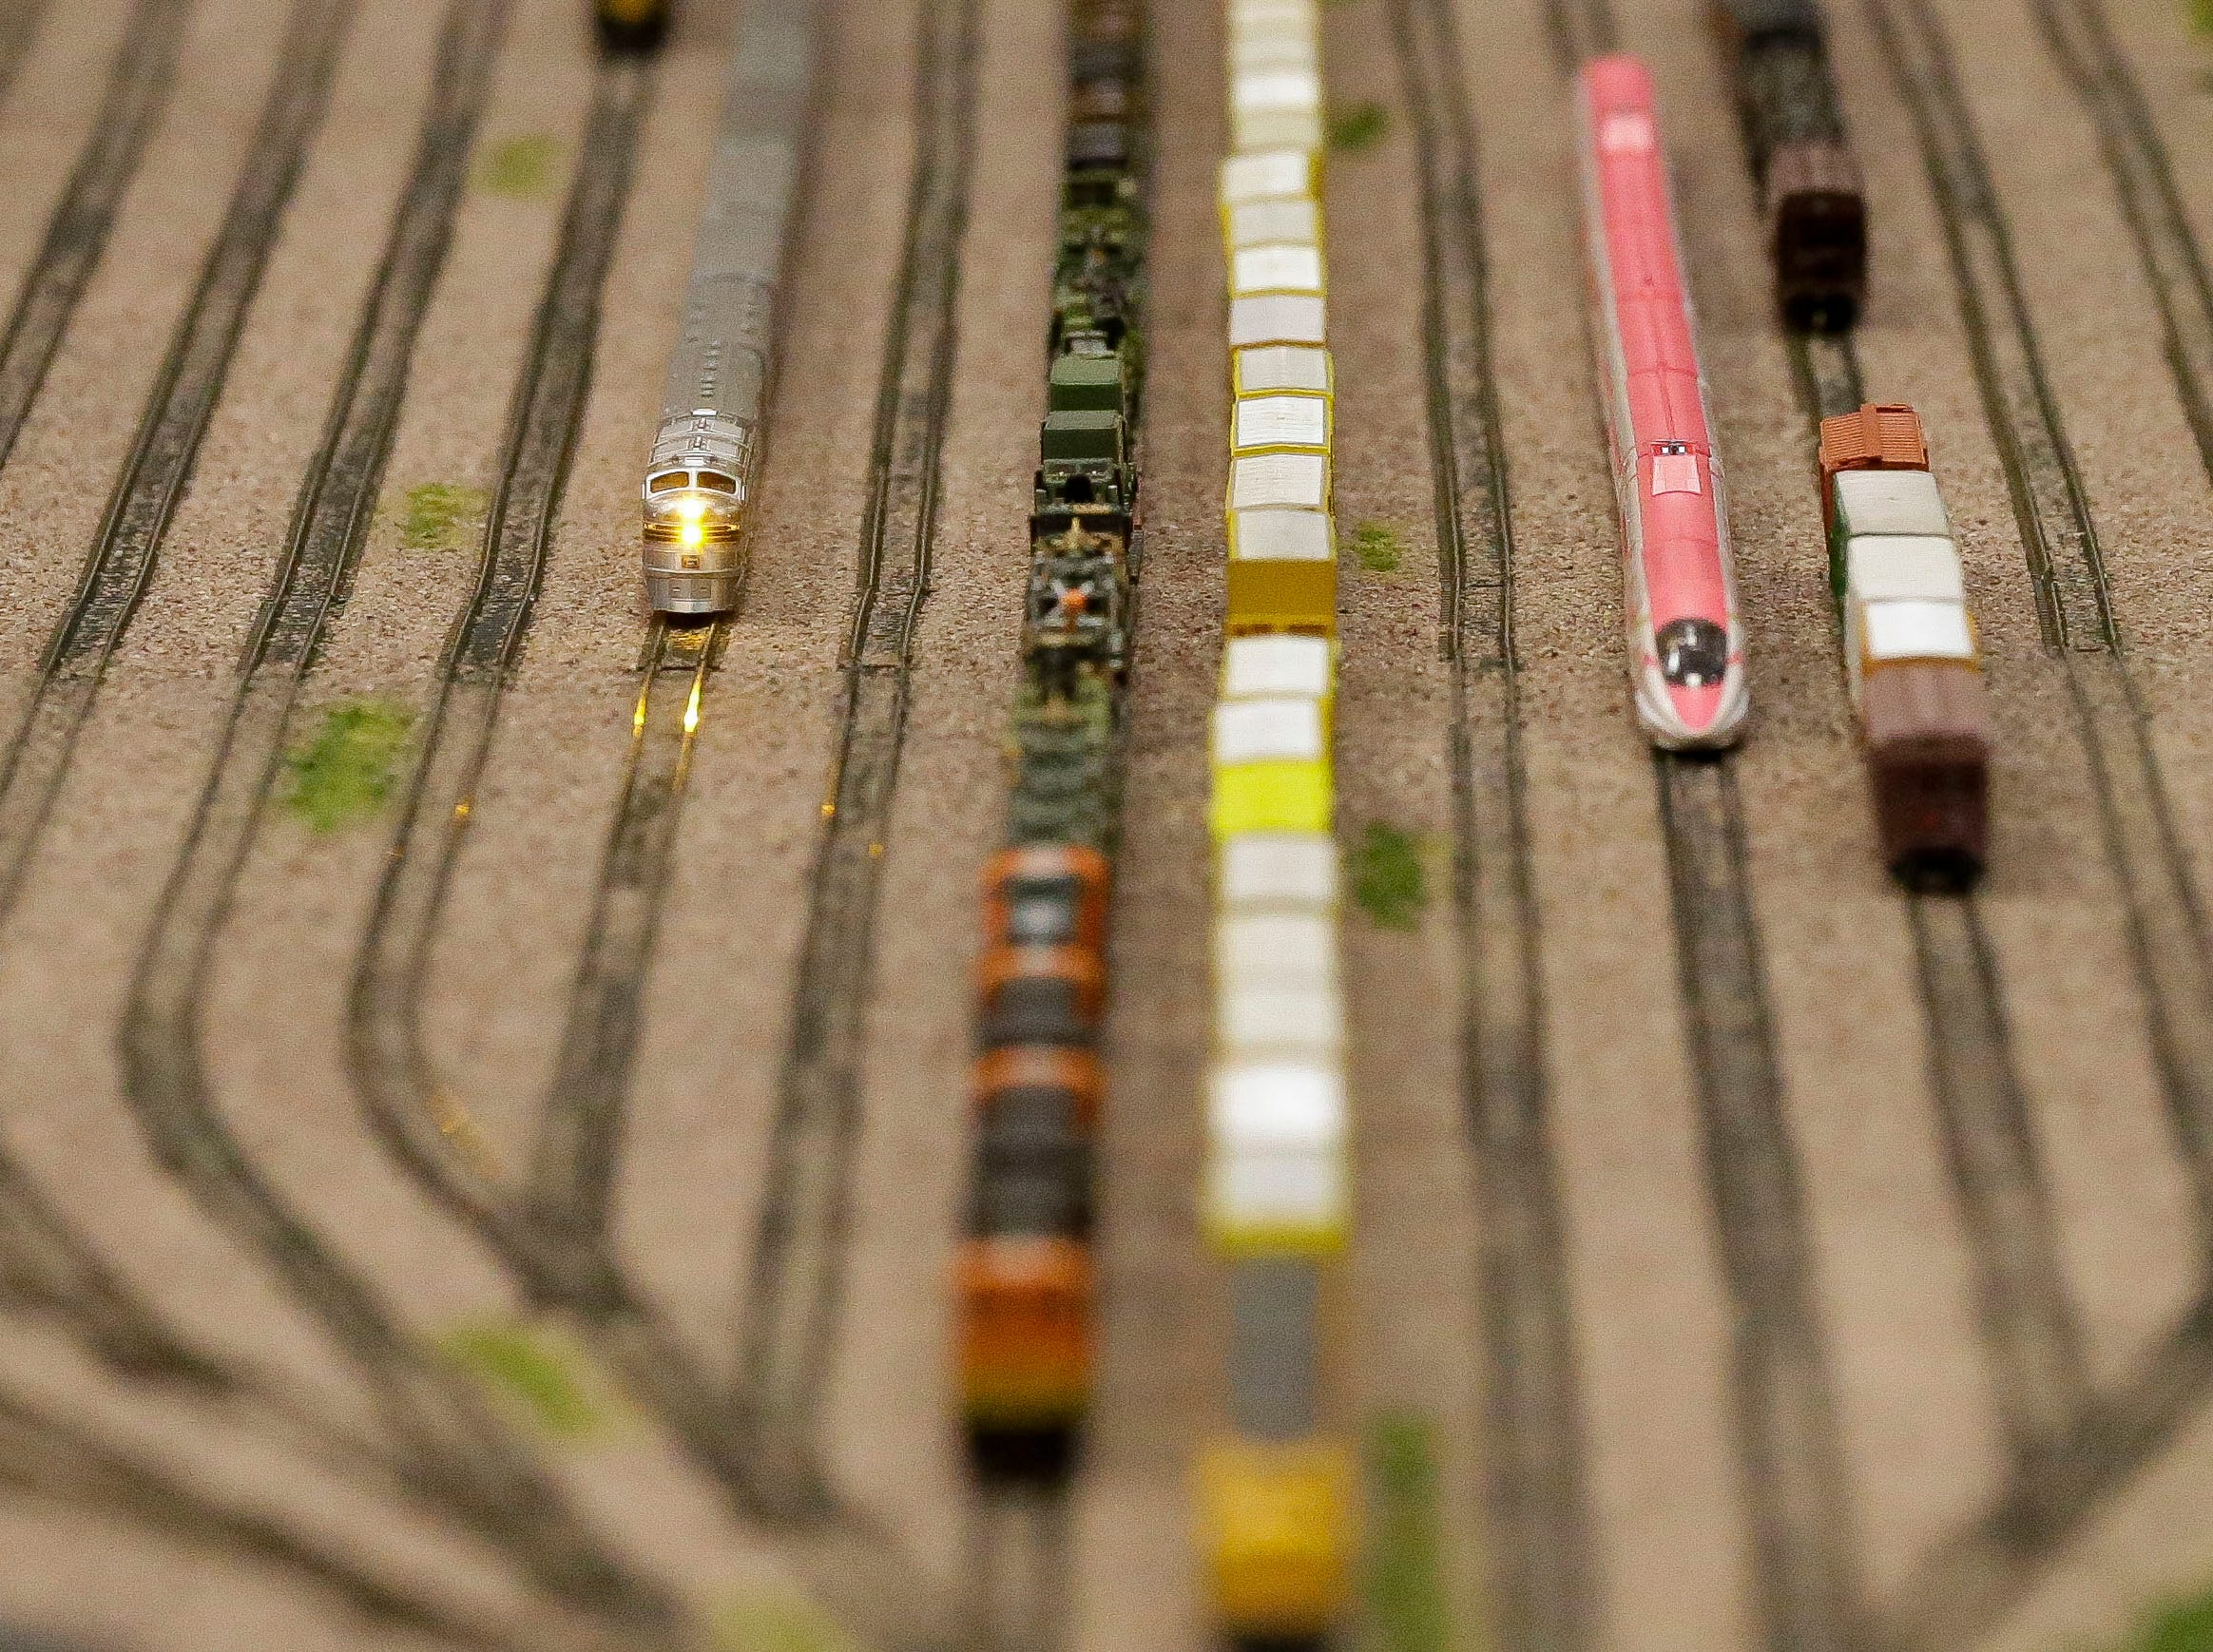 Model trains run along a diorama on Sunday, February 3, 2019, during the Arctic Run Model Railroad Show at the Holiday Inn Convention Center in Stevens Point, Wis.Tork Mason/USA TODAY NETWORK-Wisconsin